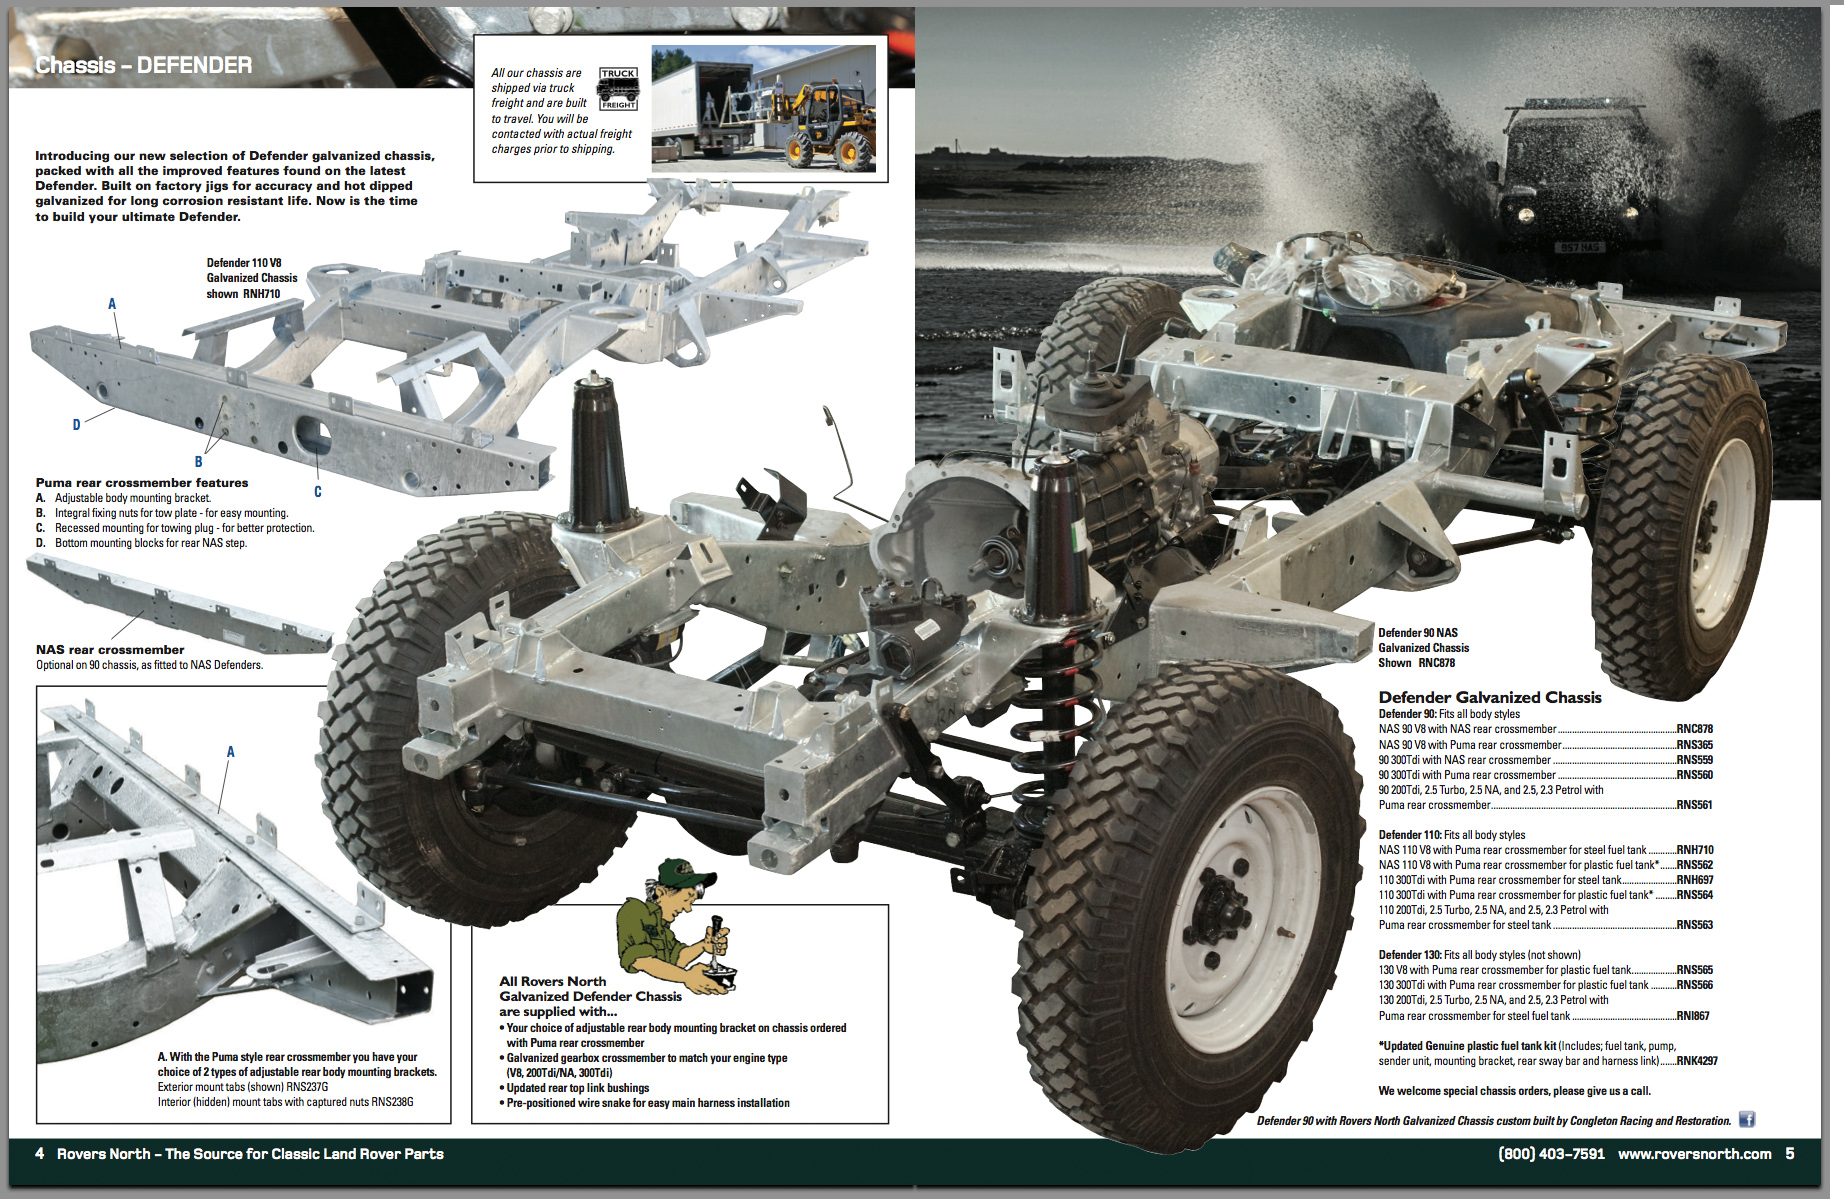 Defender Chassis Frame - Rovers North